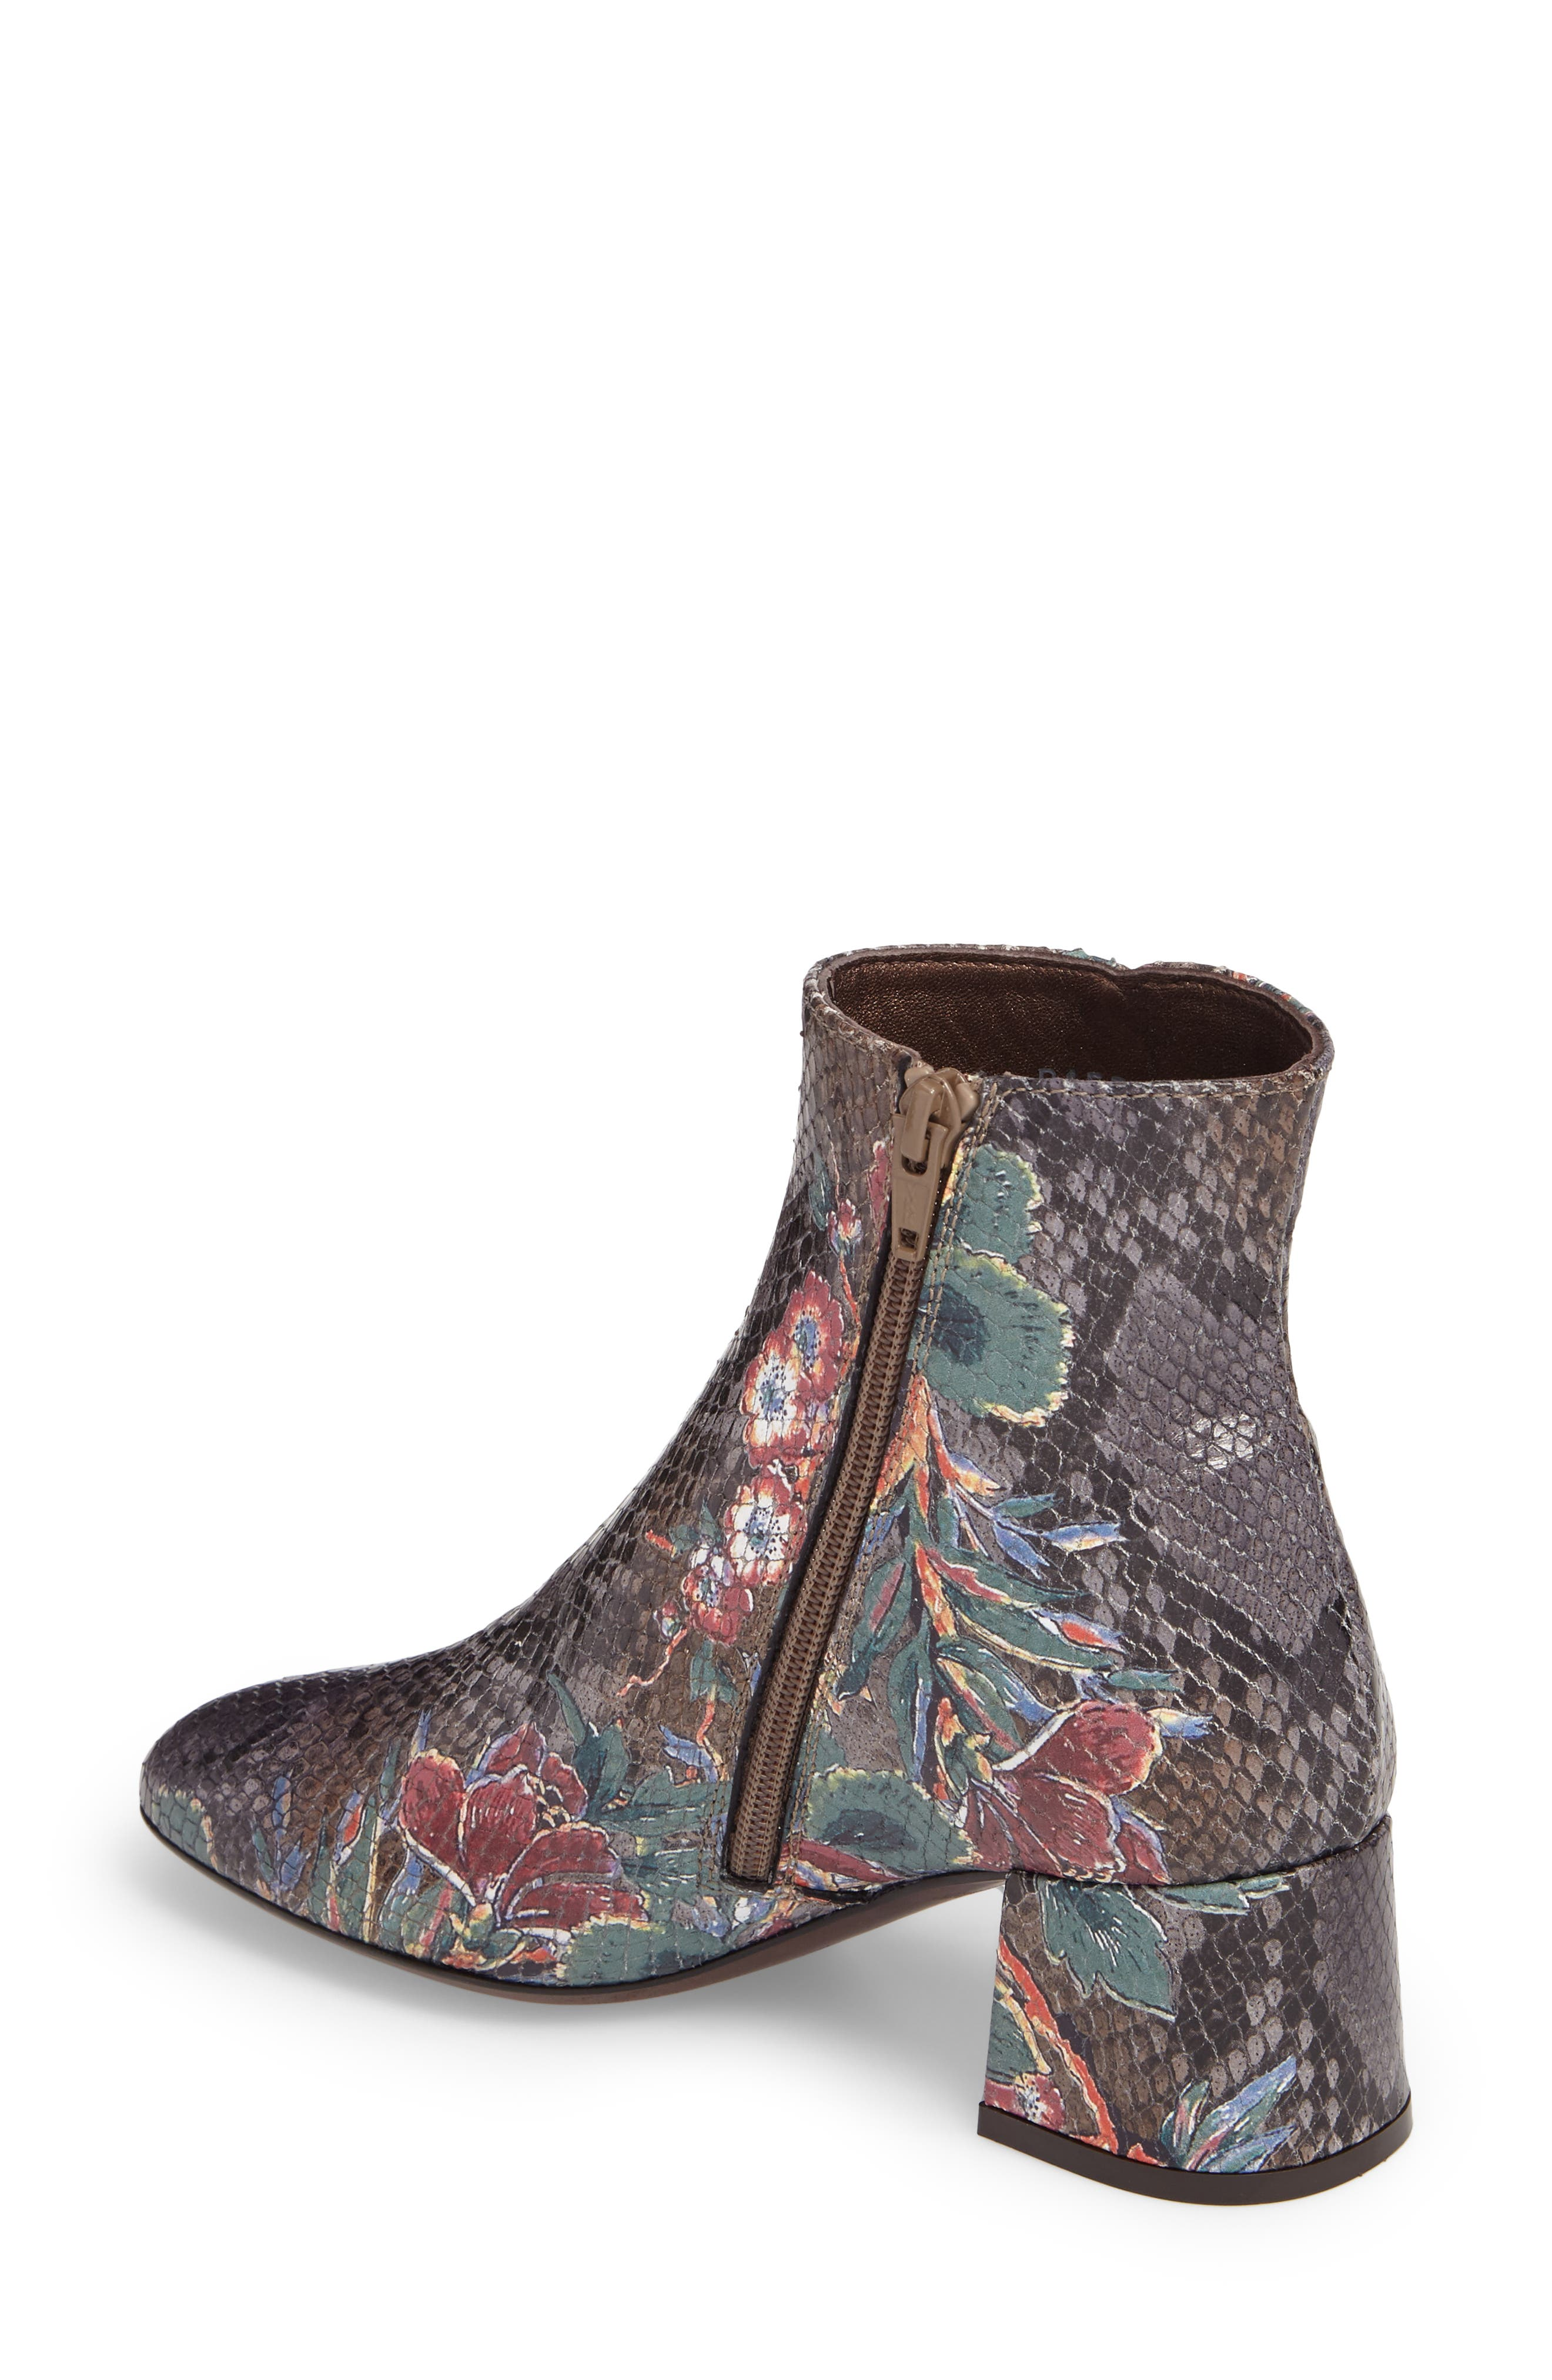 Cocorito Block Heel Bootie,                             Alternate thumbnail 2, color,                             Marble Taupe Leather